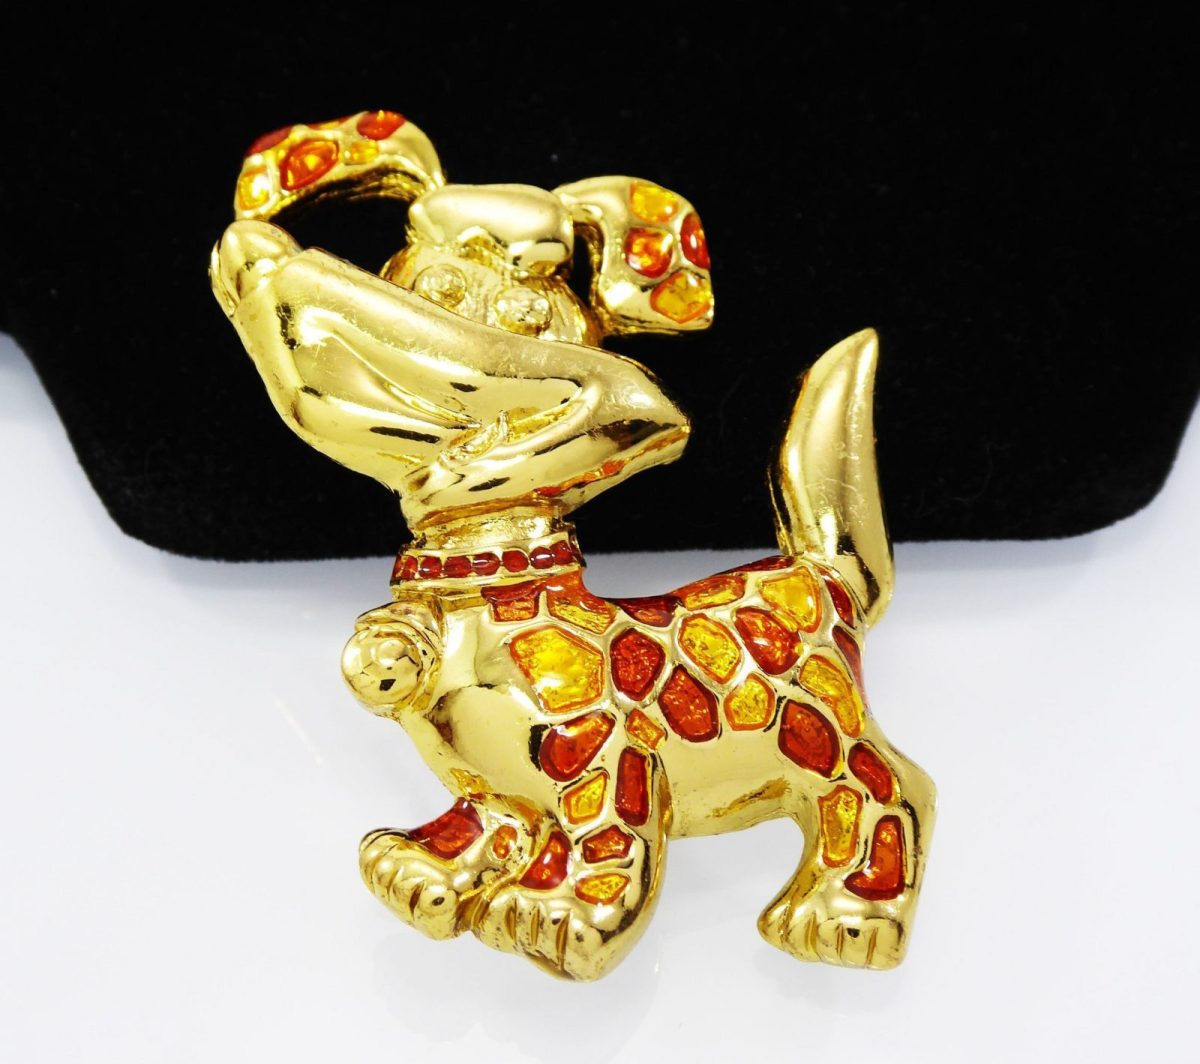 Just Listed!!!  Just Listed Happy Puppy Dog Brooch, Polkadots Terrier Pin, Rust & Gold Tone Enamel, Orange Rhinestones Collar, Vintage 1980s 1990s, Canine Jewelry: Happy Puppy Dog Brooch, Polkadots Terrier Pin, Rust & Gold Tone… http://dlvr.it/RTQ67H Shop Now  Shop Now!!!pic.twitter.com/SPYnNiDcK5